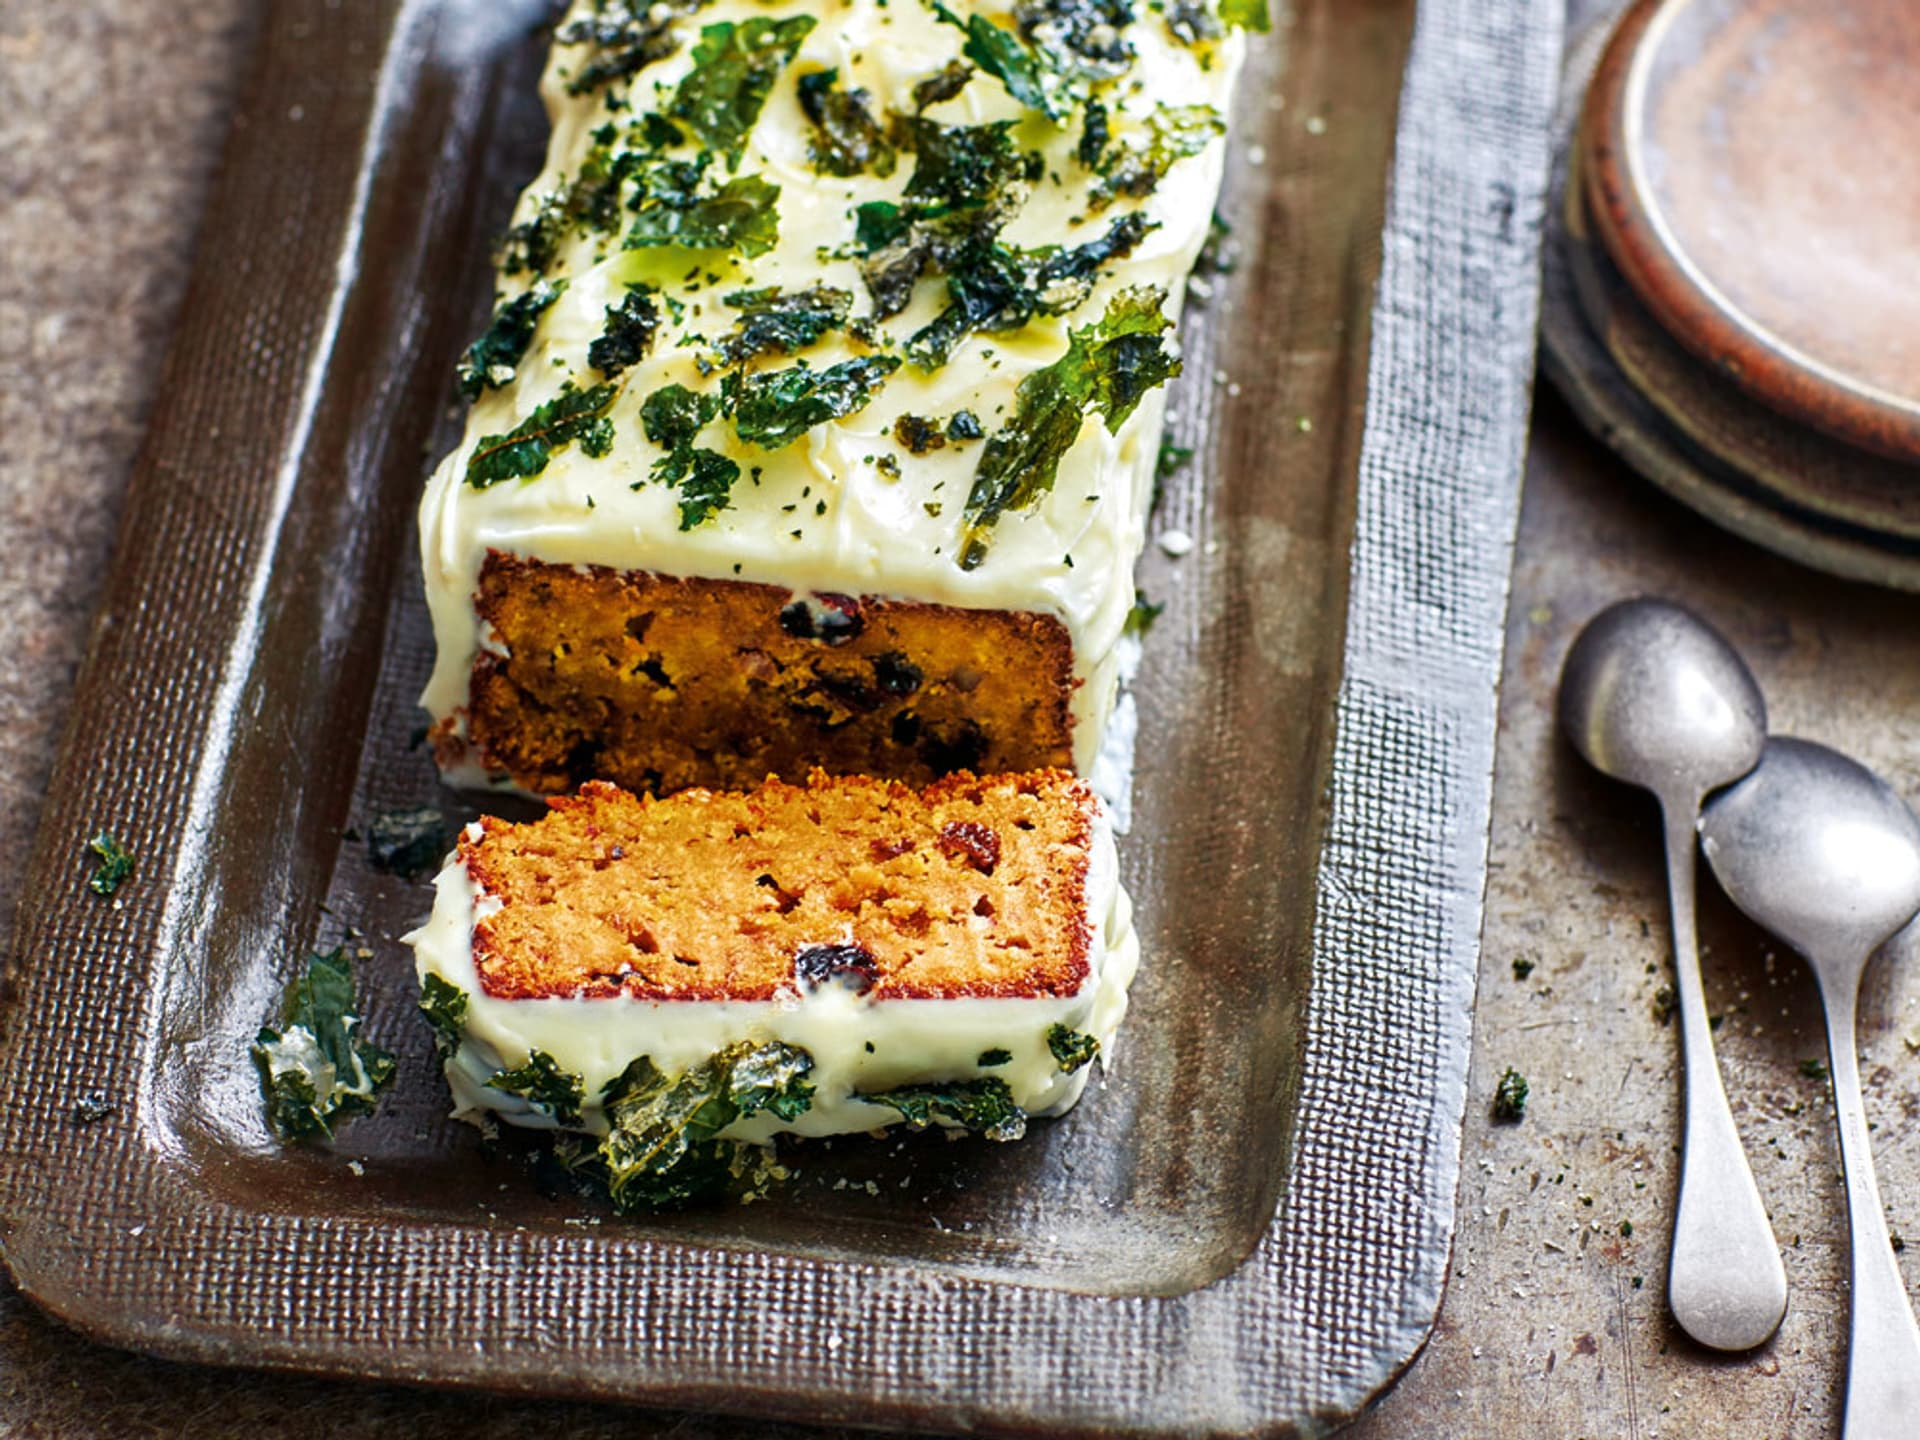 Carrotcake mit Kale-Chips